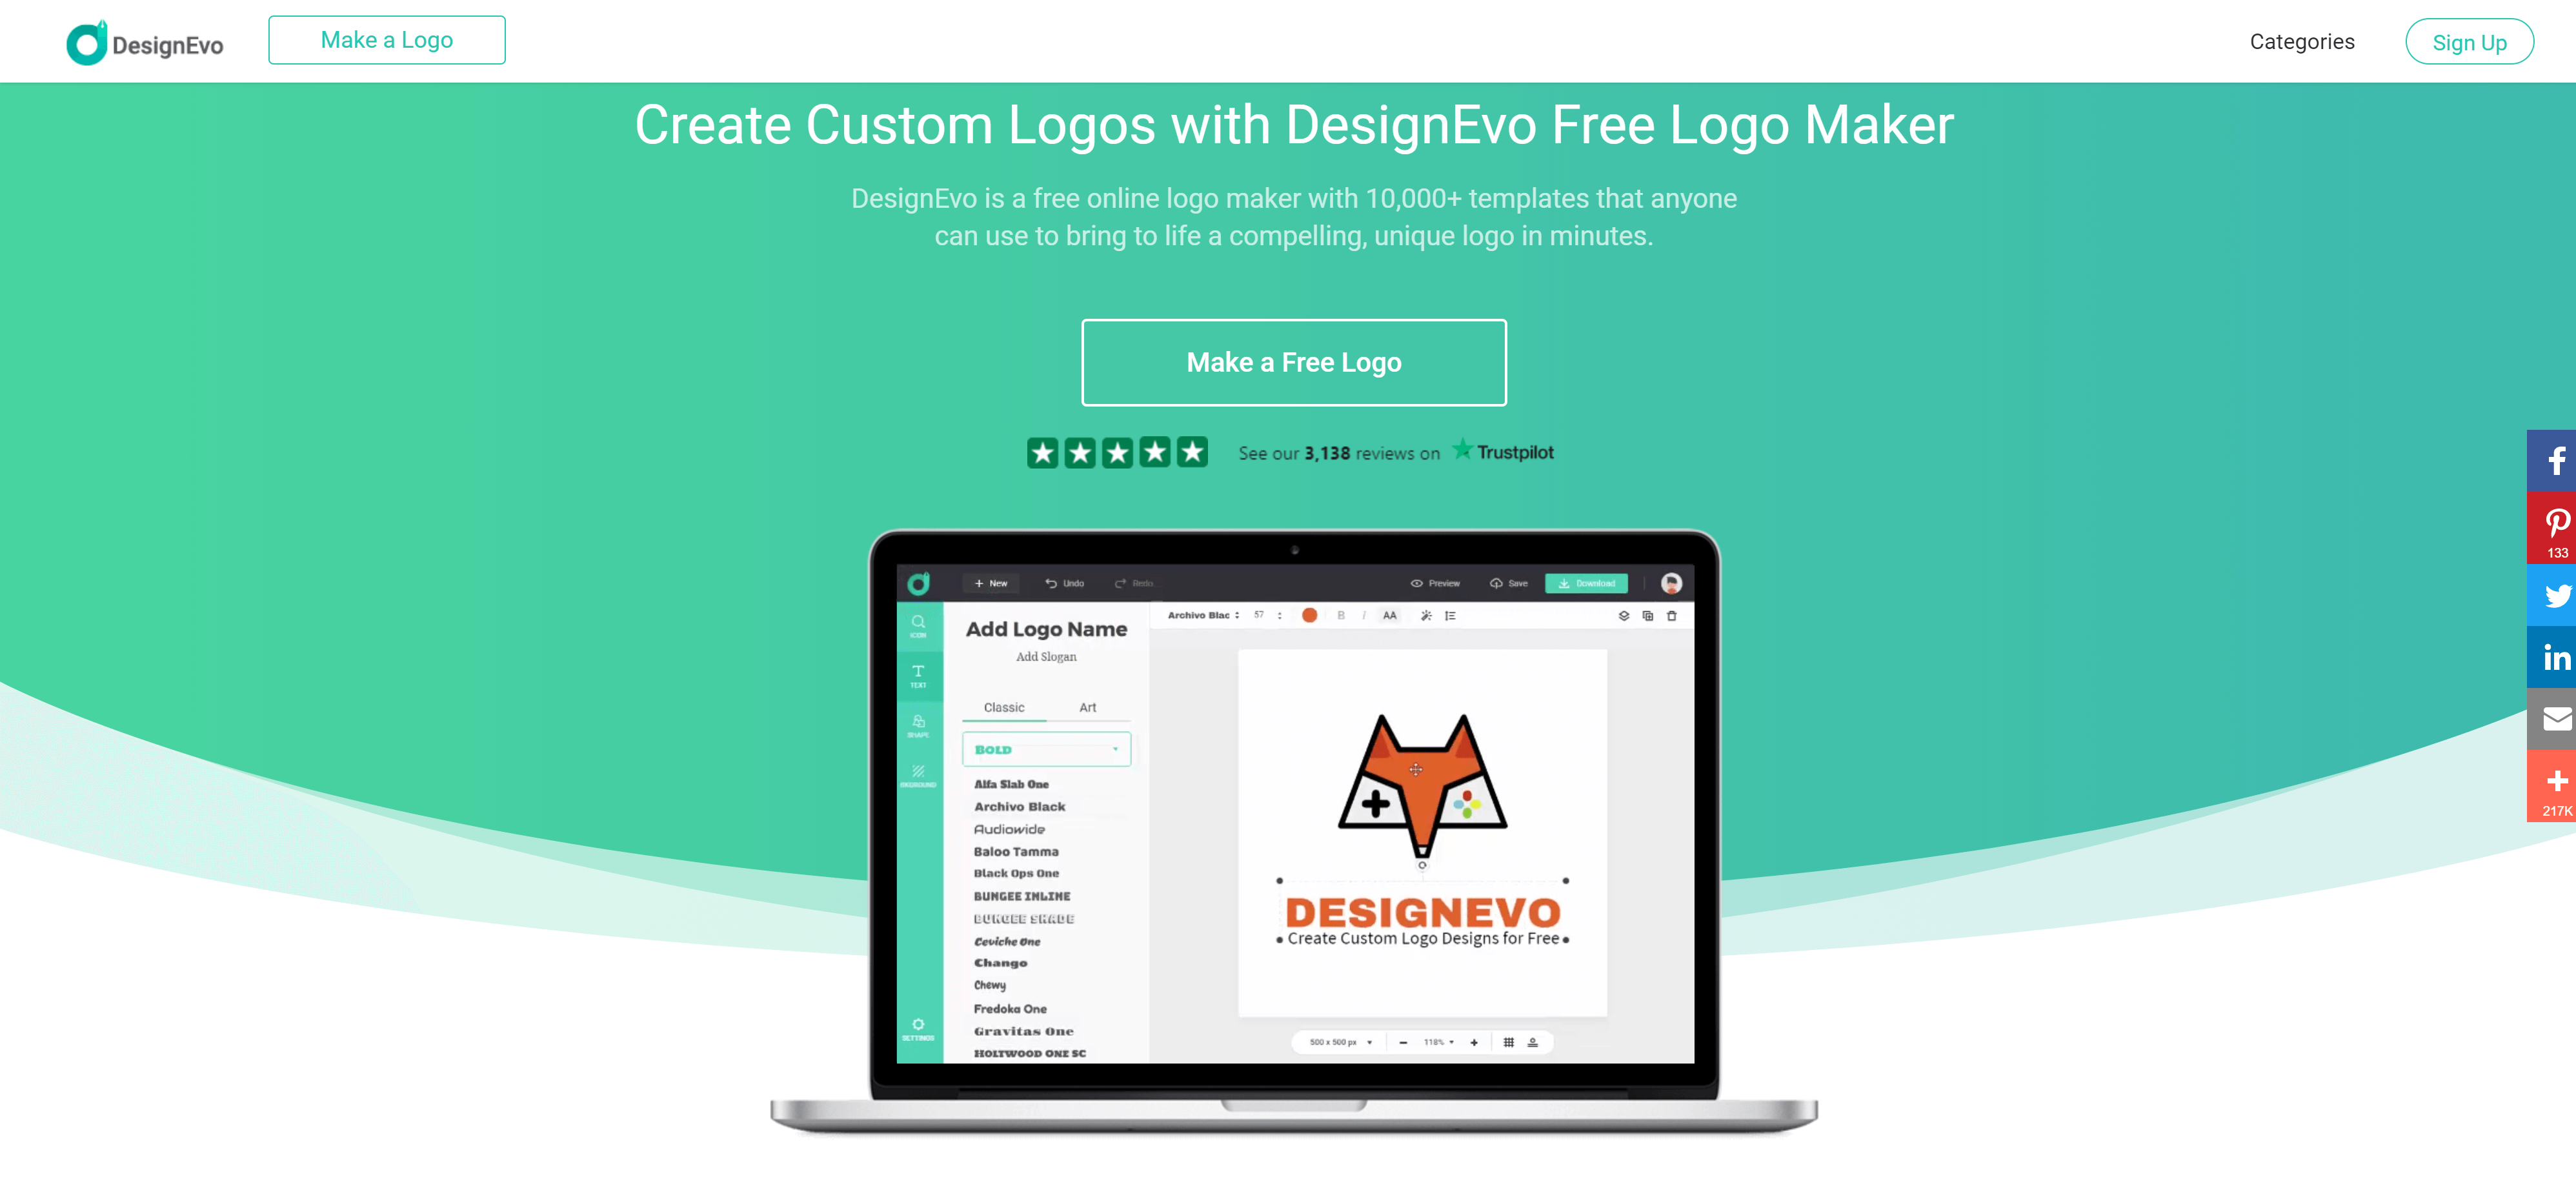 DesignEvo: Easily Create Custom Logos